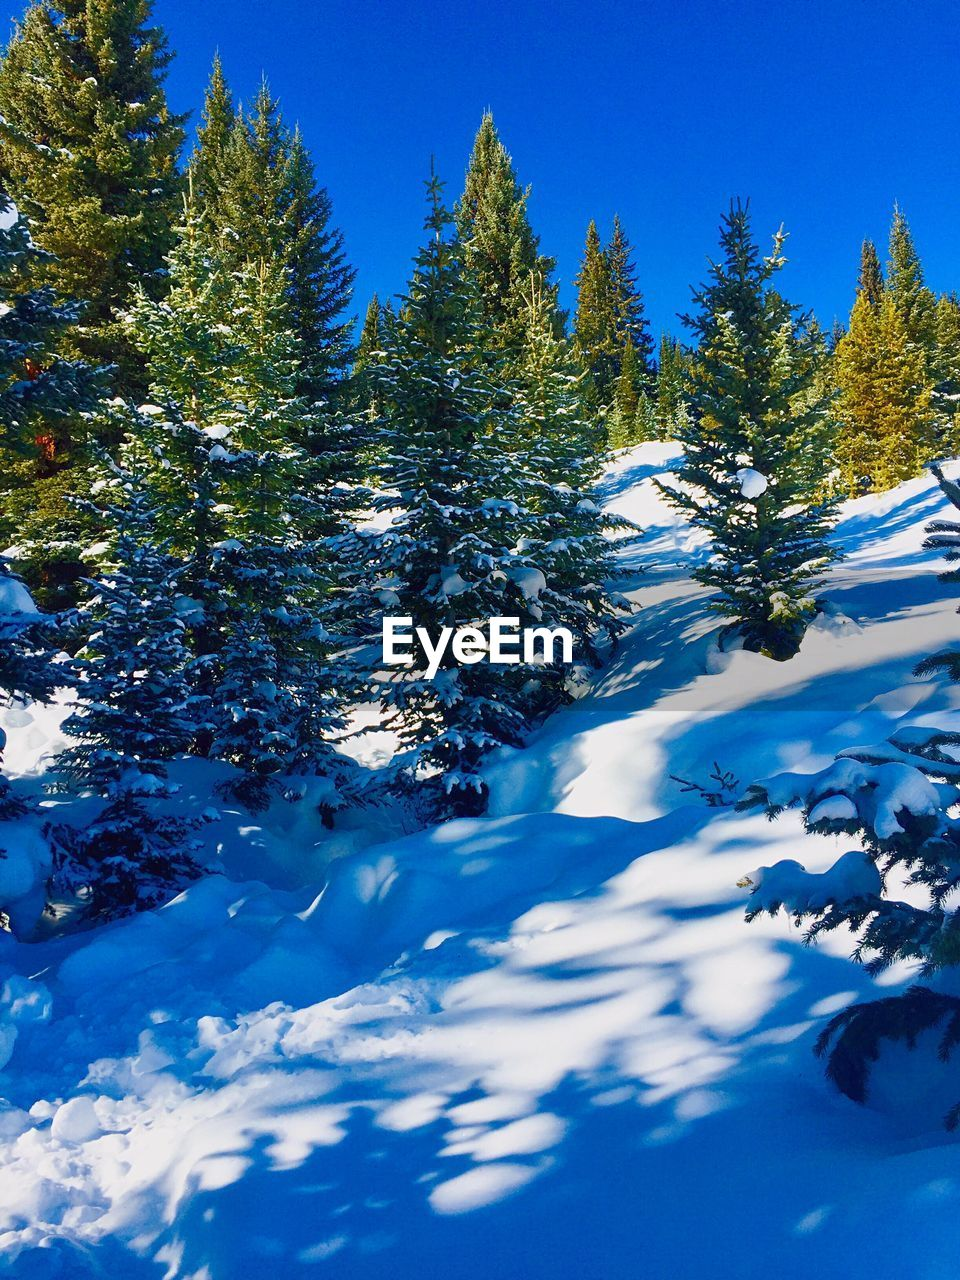 tree, plant, beauty in nature, winter, snow, tranquility, cold temperature, growth, blue, day, scenics - nature, nature, no people, tranquil scene, sunlight, sky, non-urban scene, land, mountain, coniferous tree, pine tree, snowcapped mountain